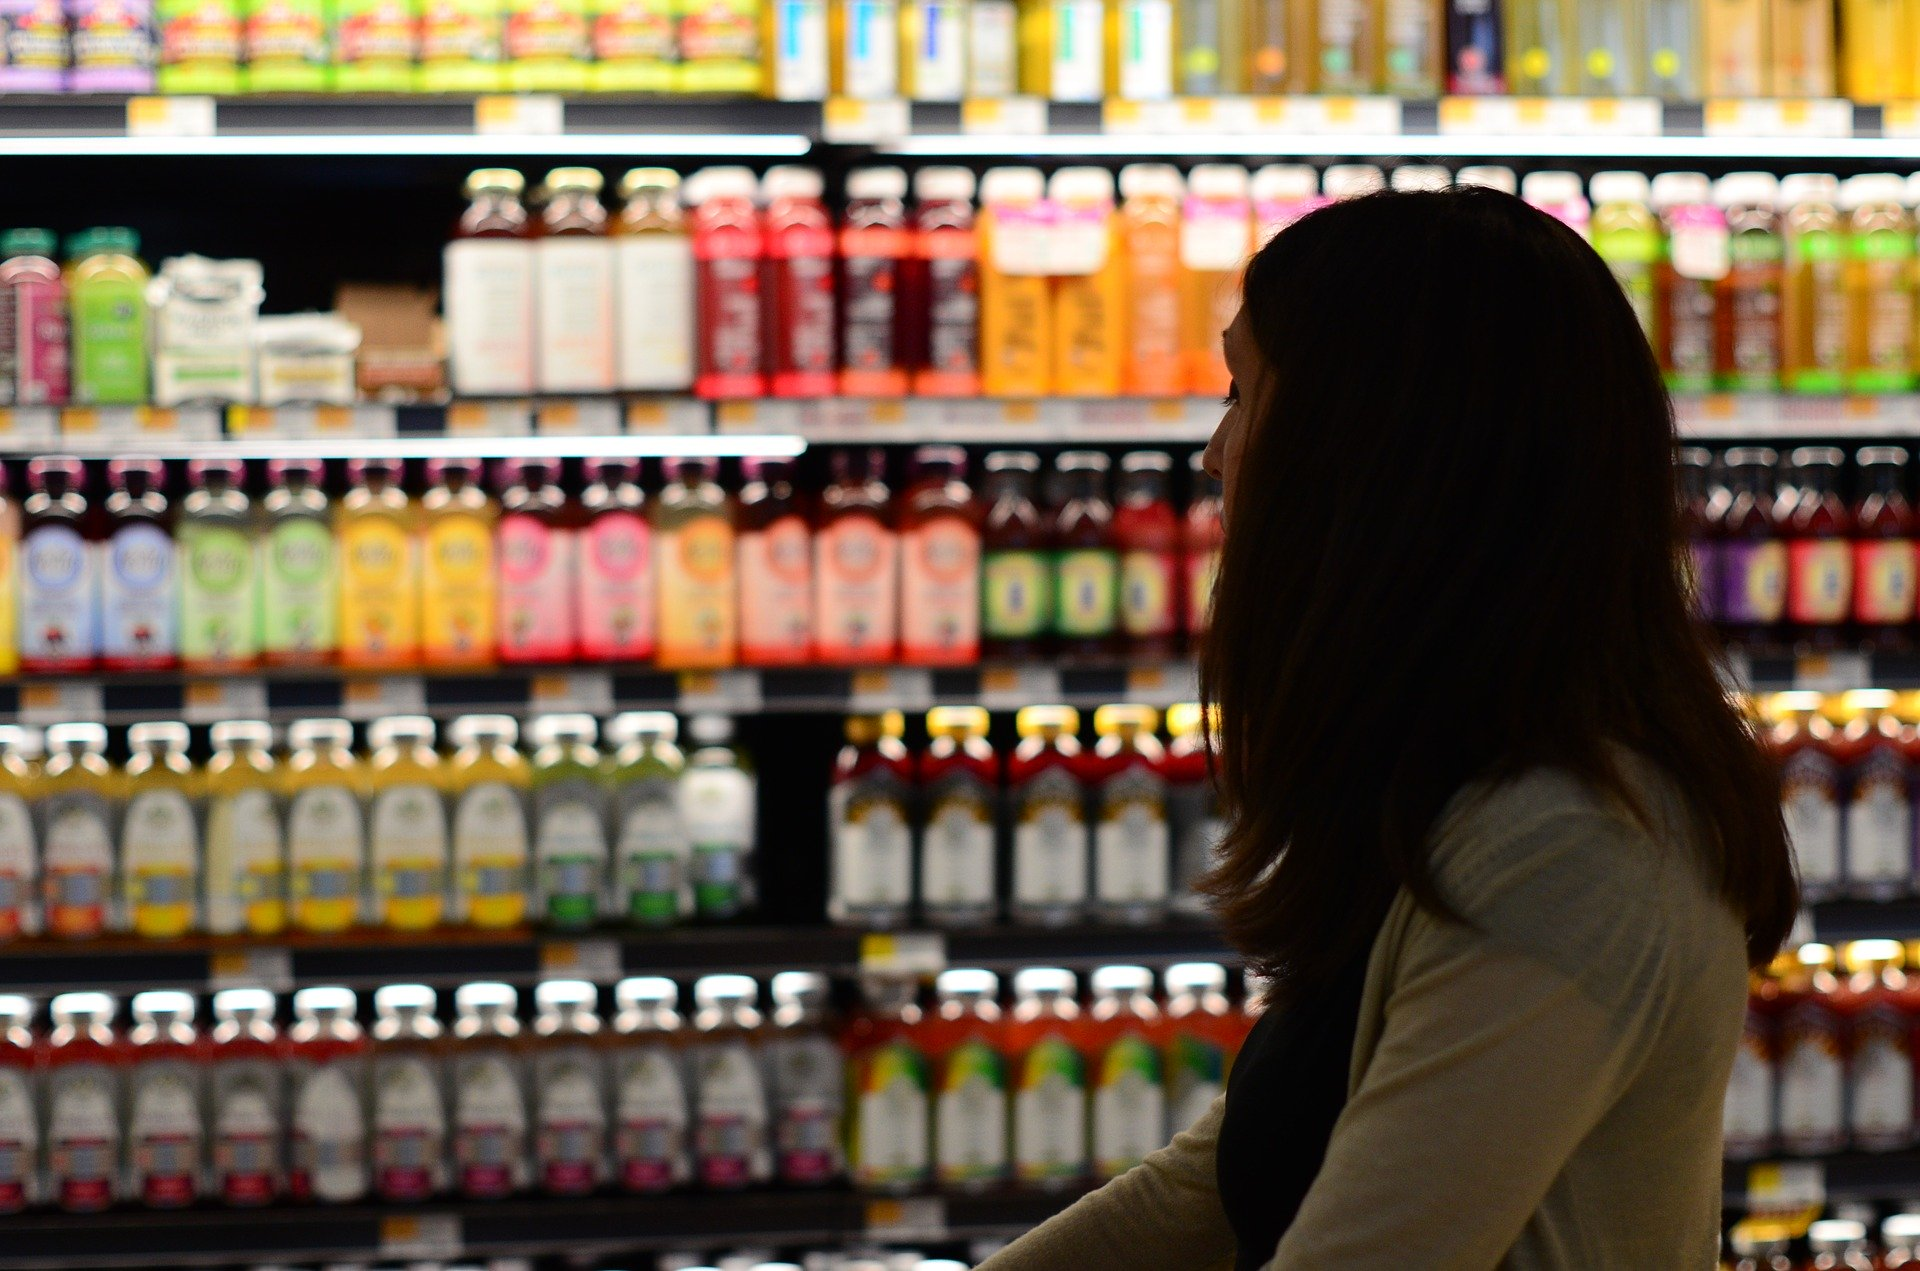 Image of woman looking at juice in the grocery store